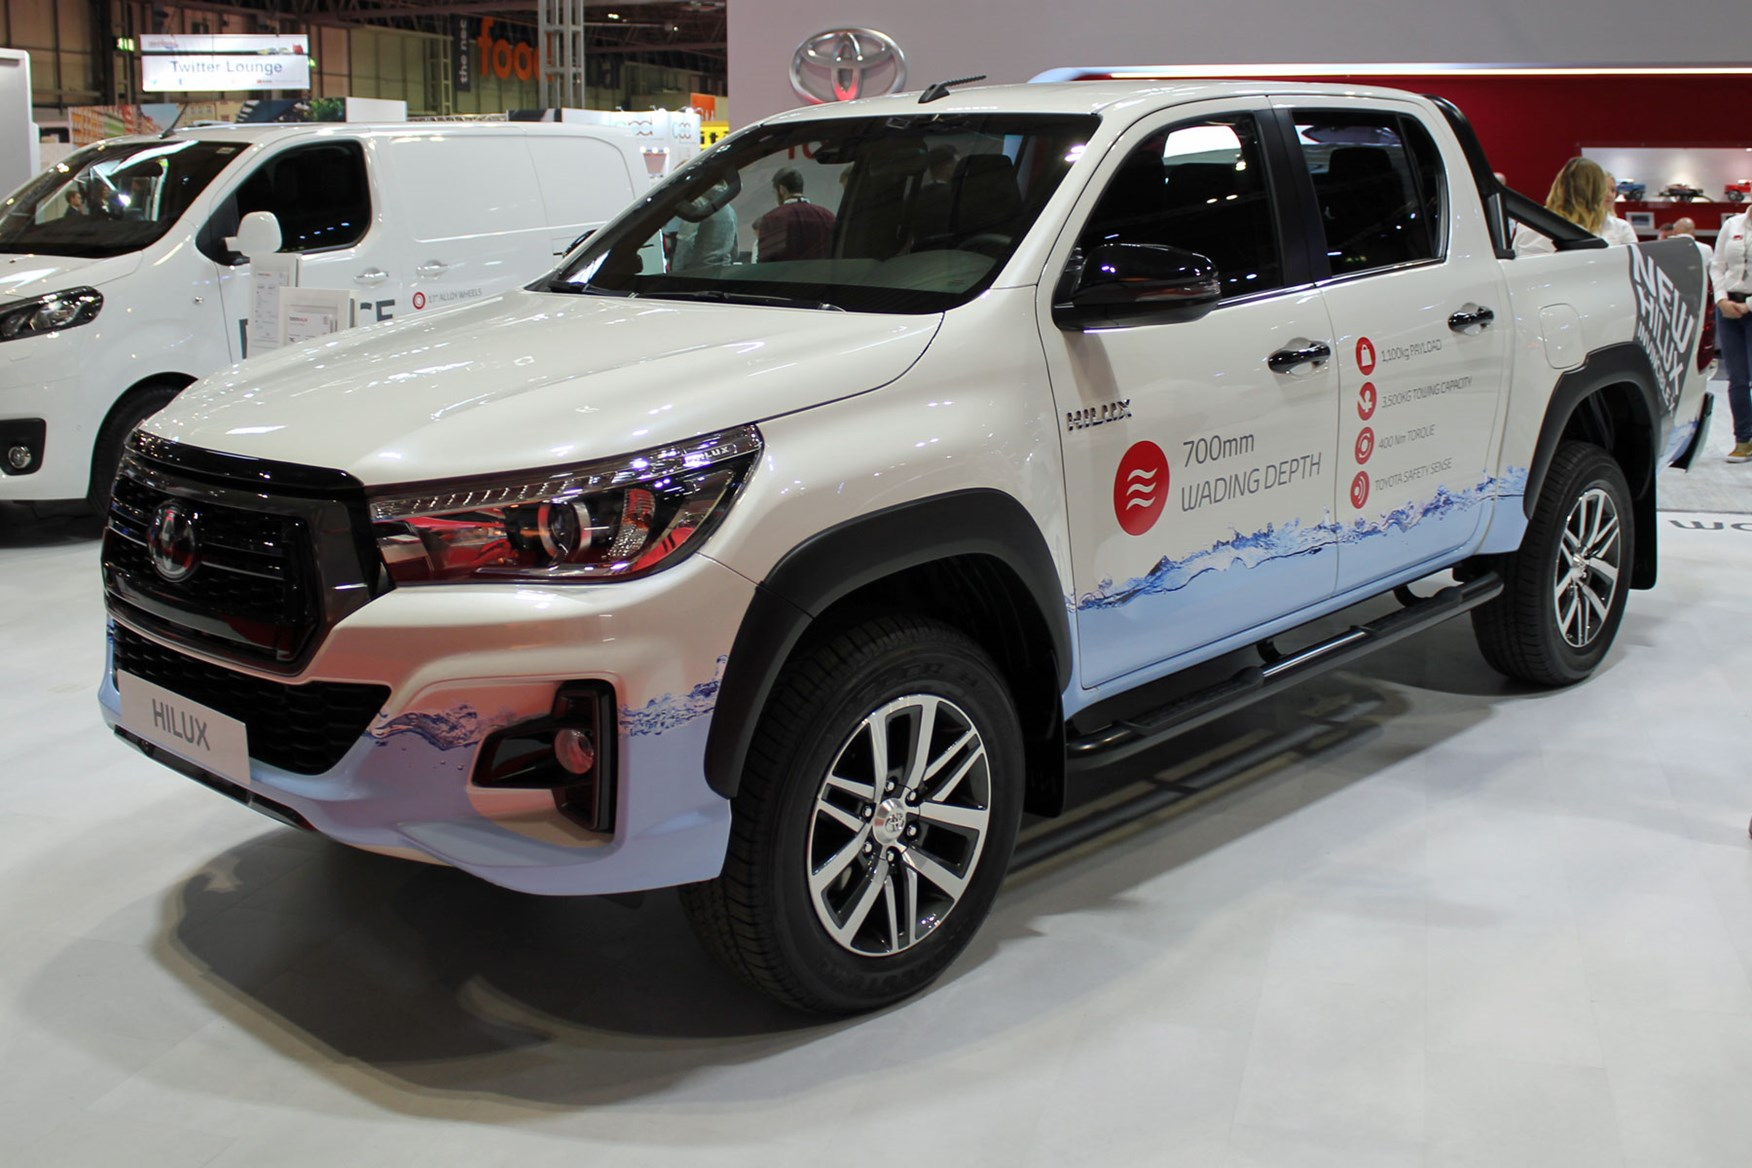 Toyota Hilux Invincible X 2019 launched at the CV Show